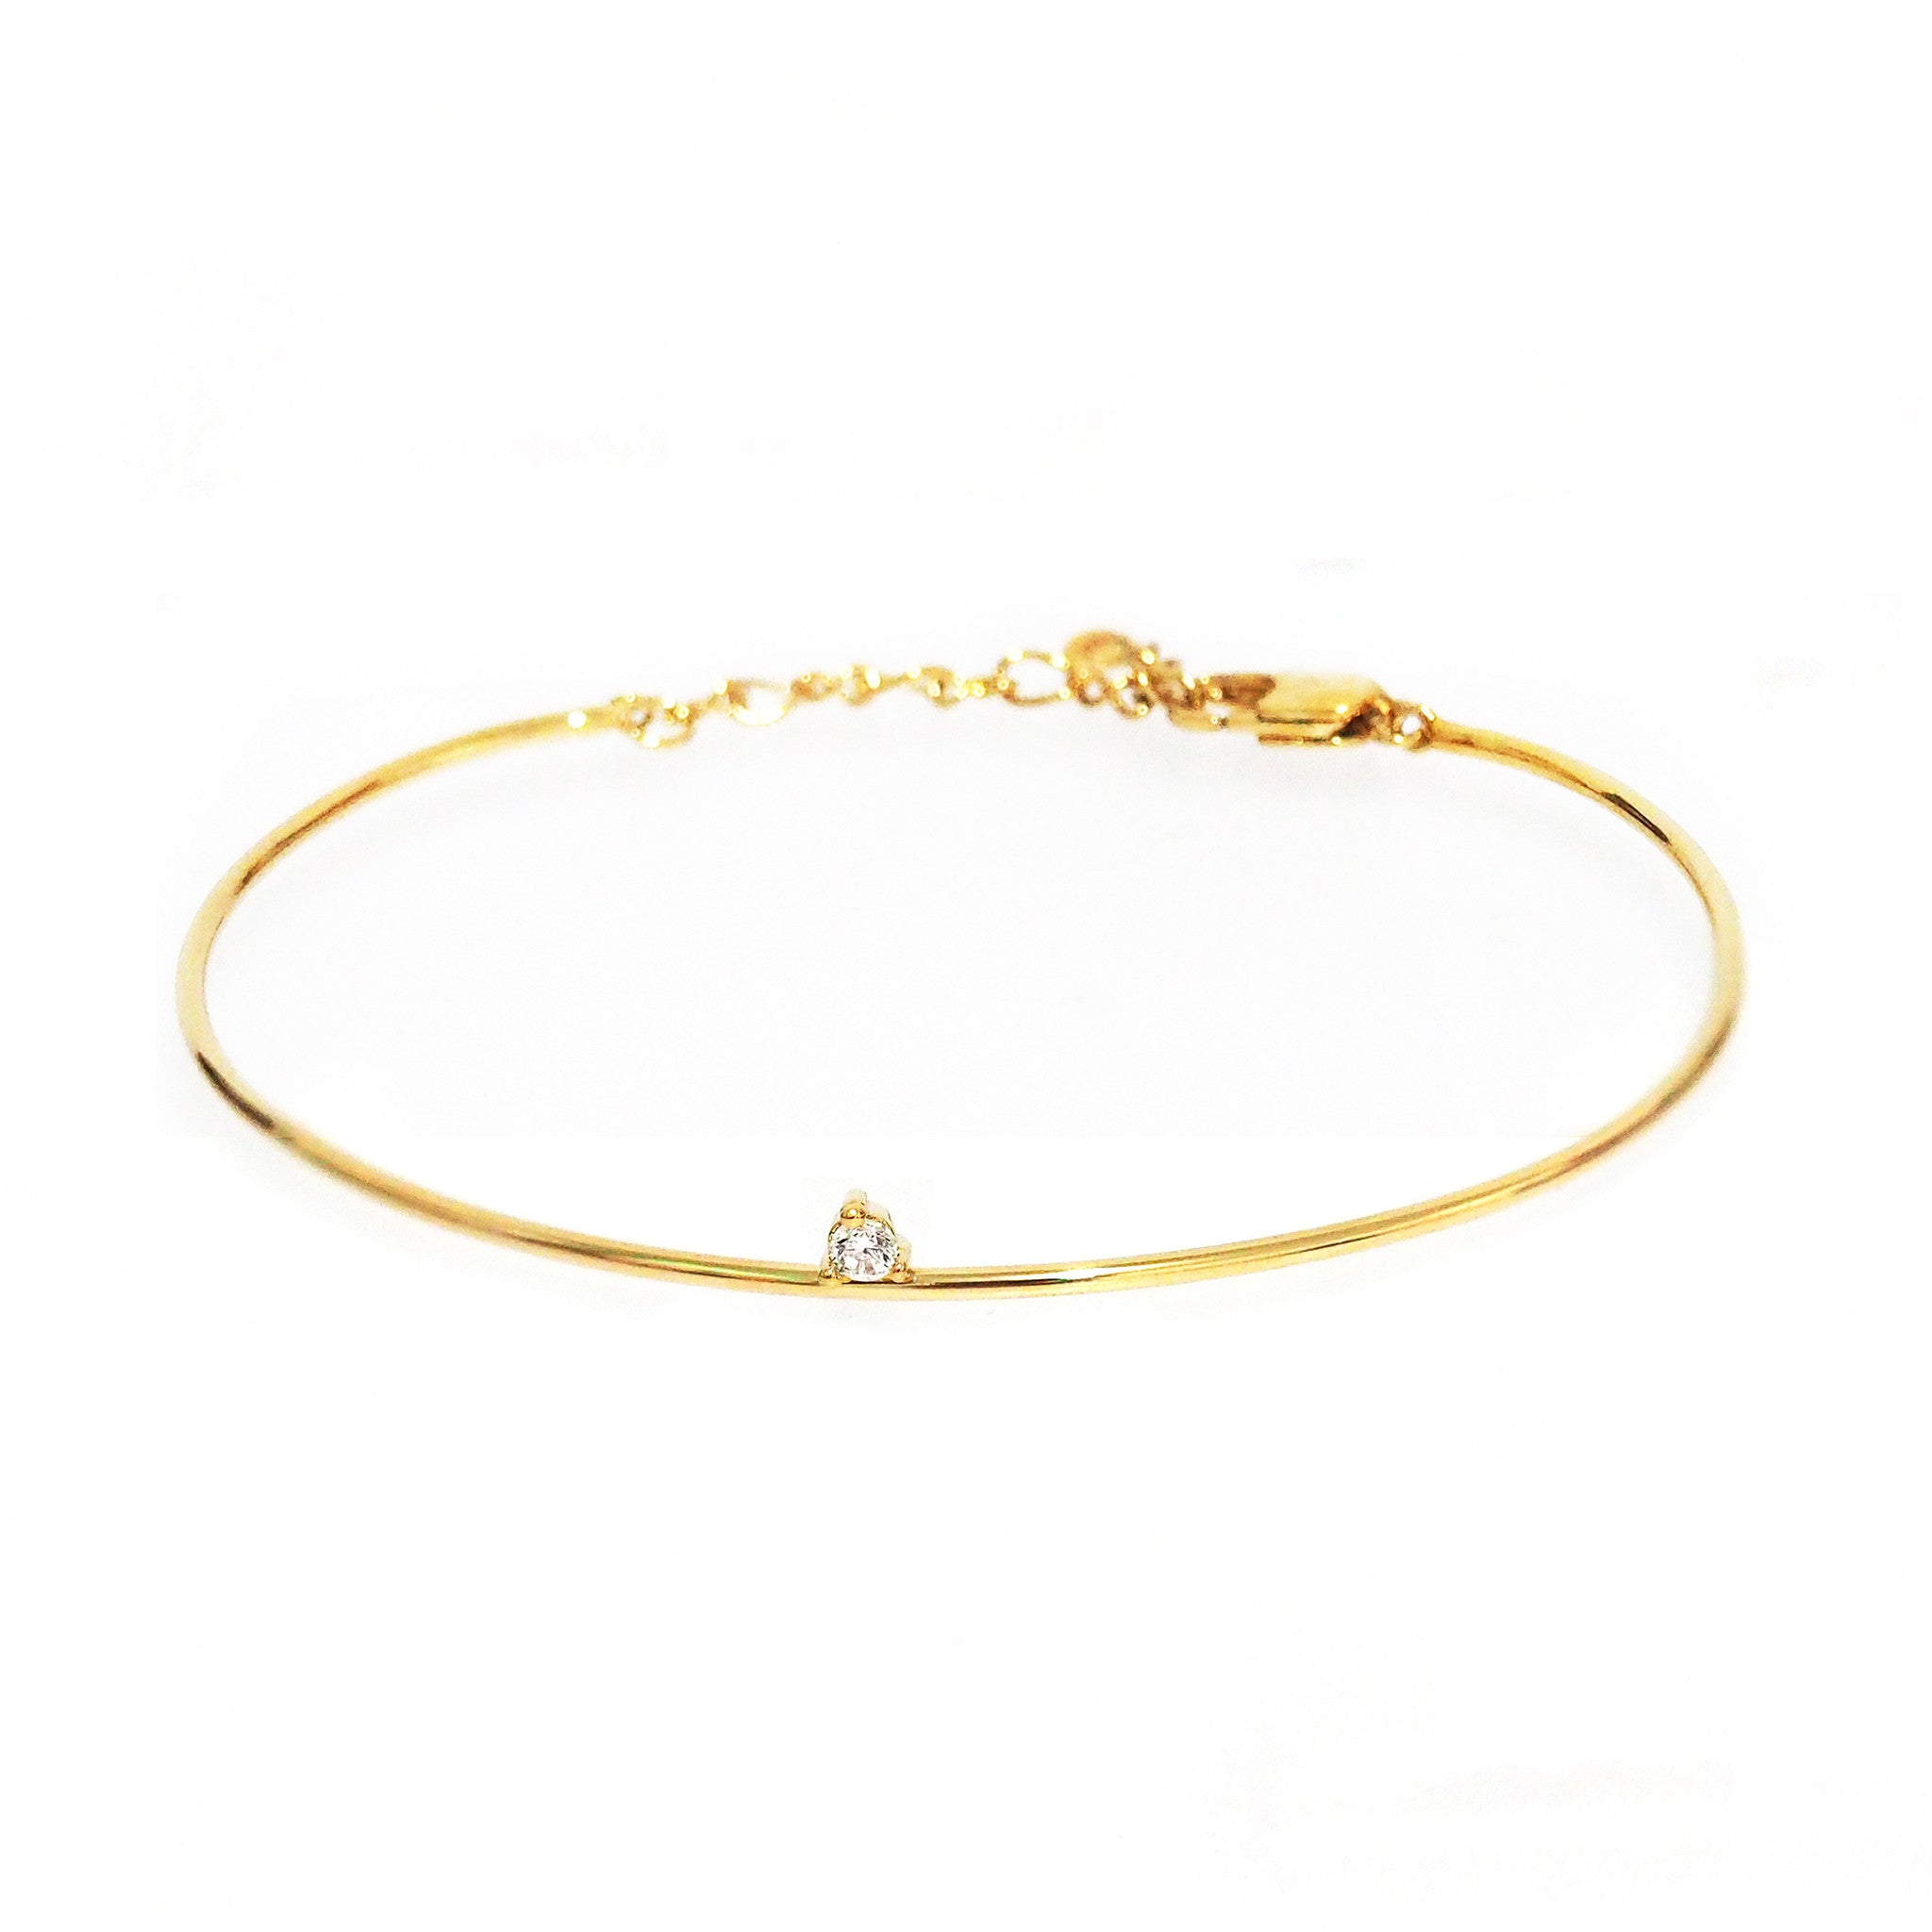 ae v bracelets stone t three stones endless w in gold tw bangle ct p bangles with diamond